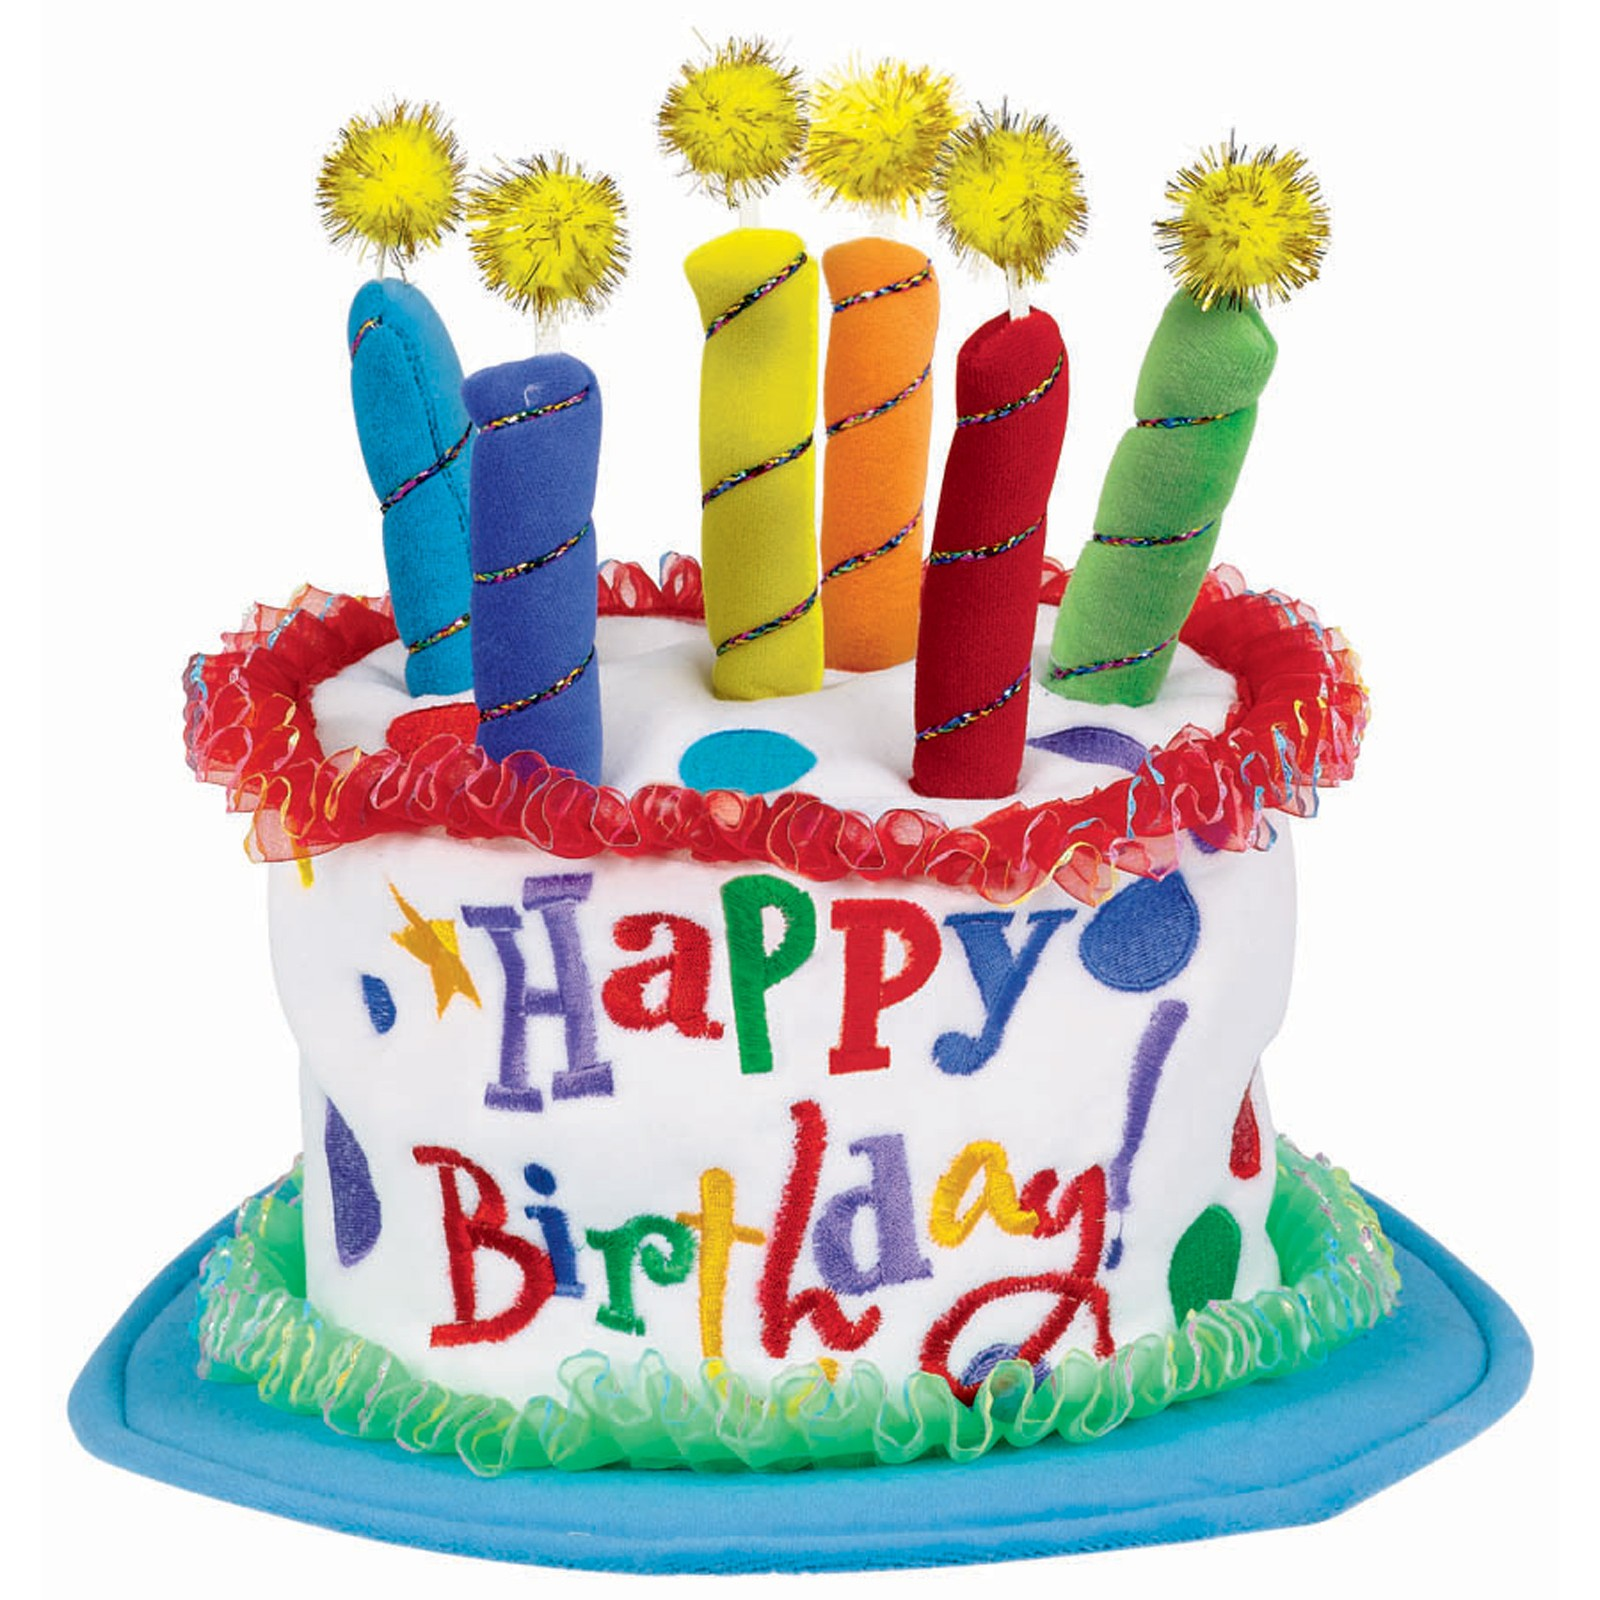 High res wallpapers alex. August clipart birthday cake png freeuse library